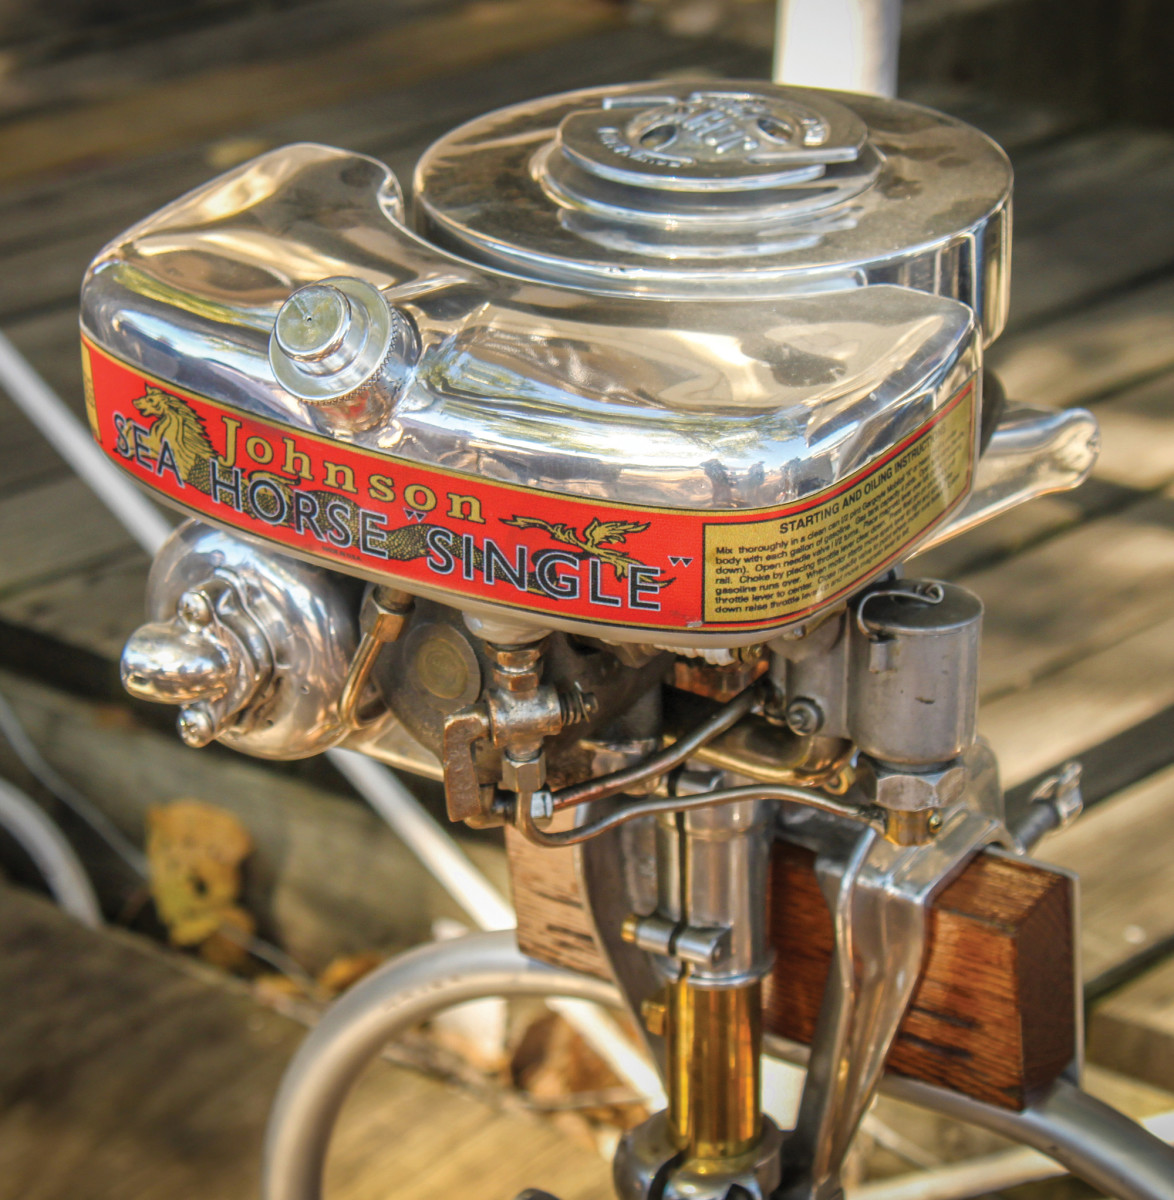 02-old-outboard-engine